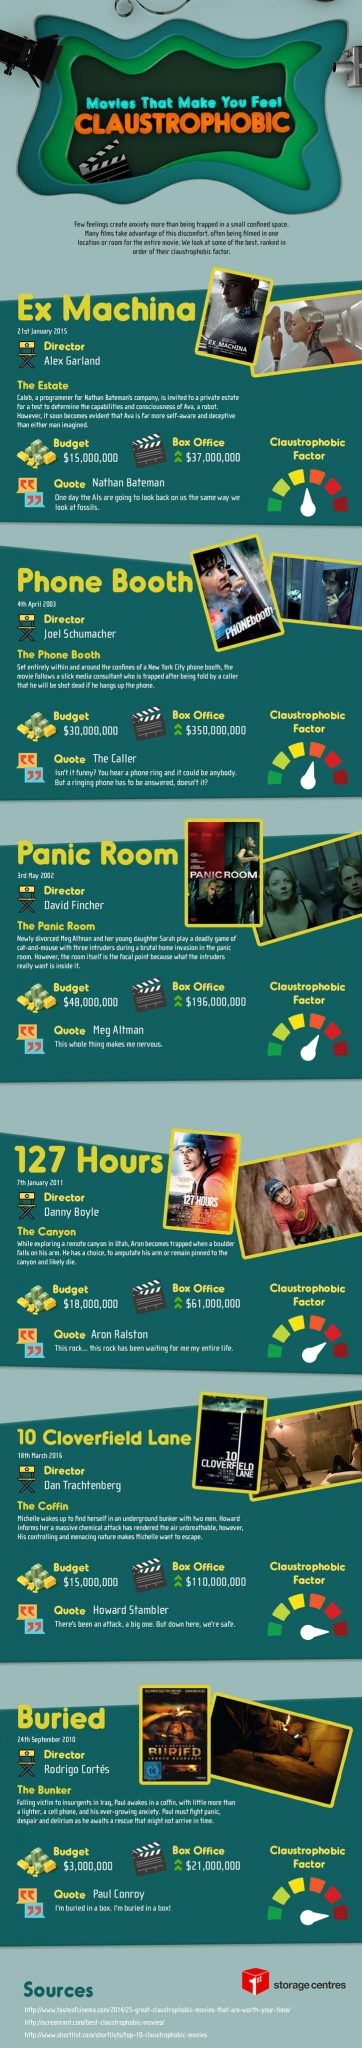 Movies That Make You Feel Claustrophobic!